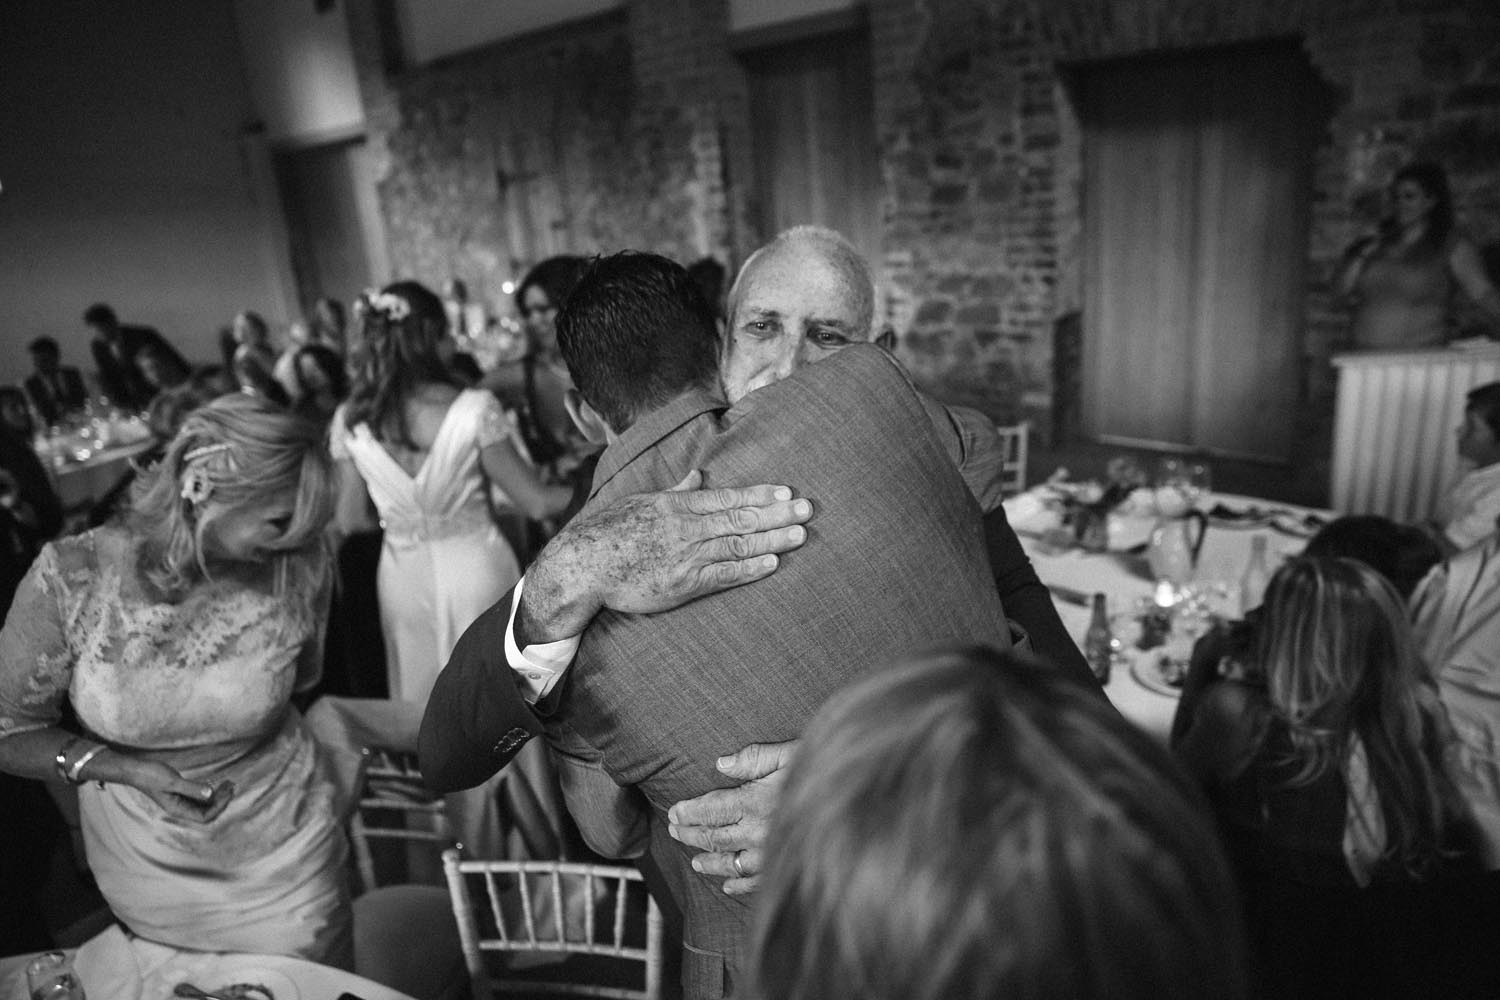 Guests embracing during a wedding celebration